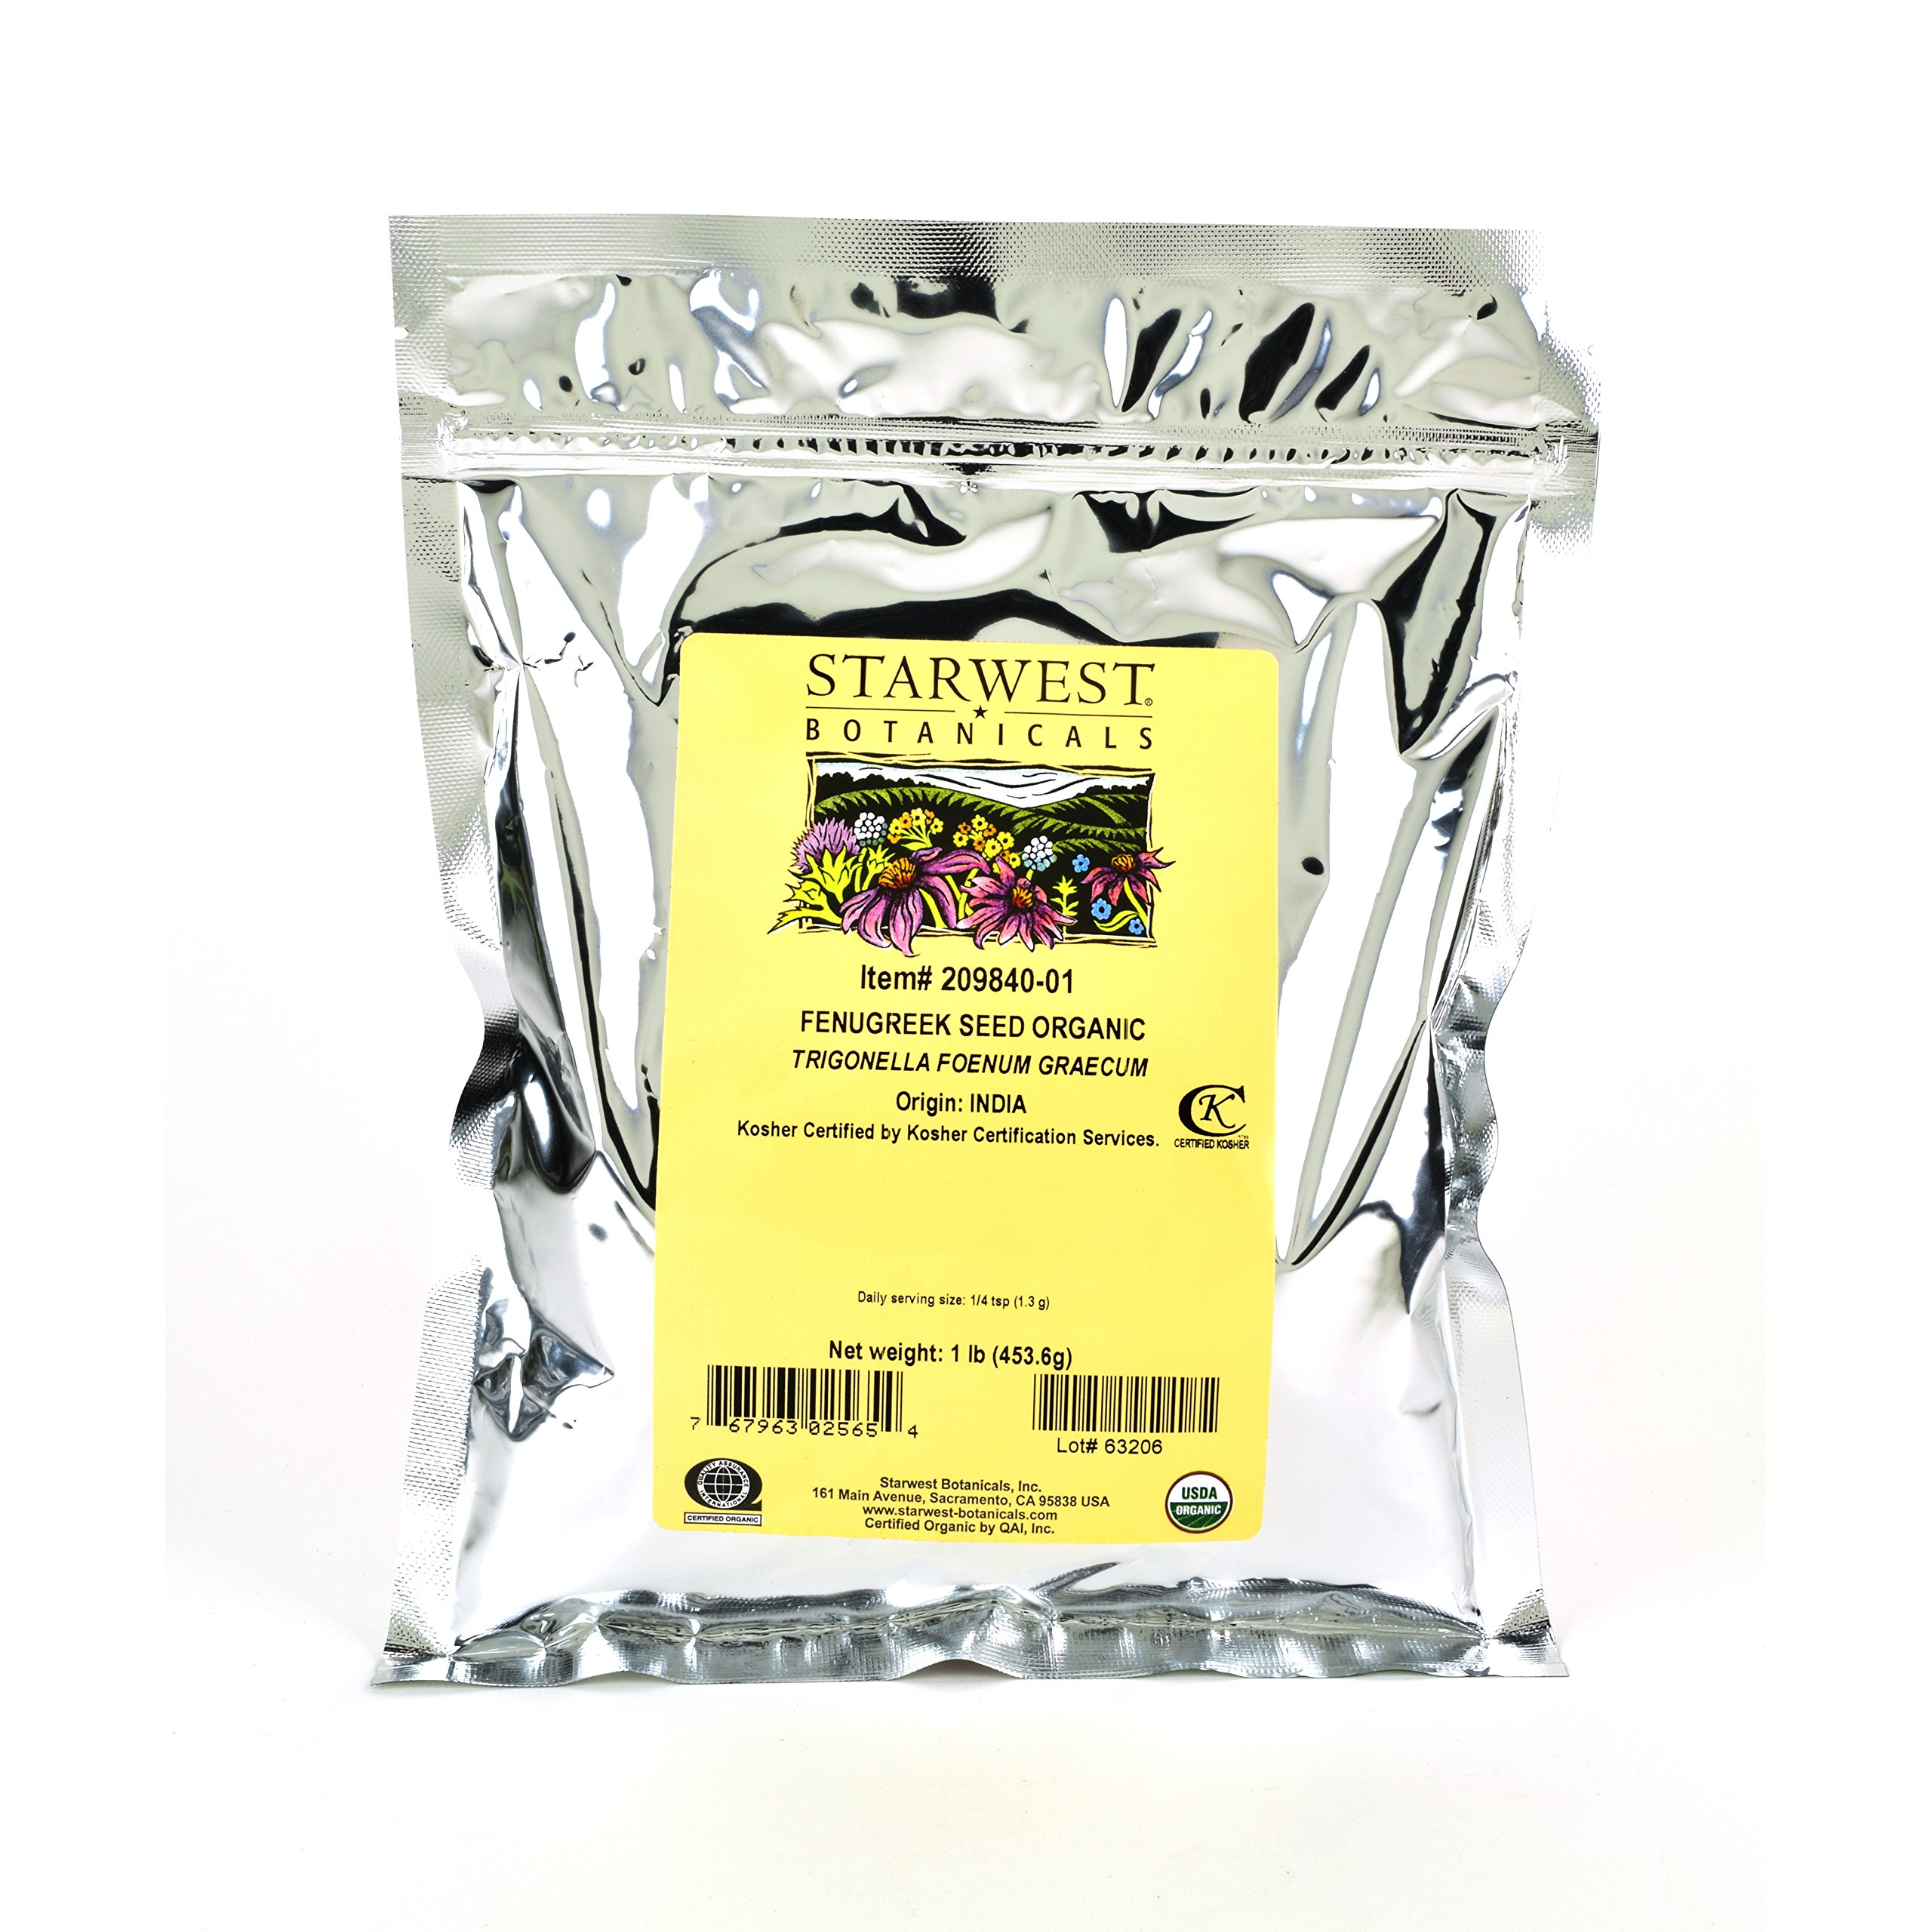 Starwest Botanicals Organic Fenugreek Seed Powder, 1 Pound by Starwest Botanicals